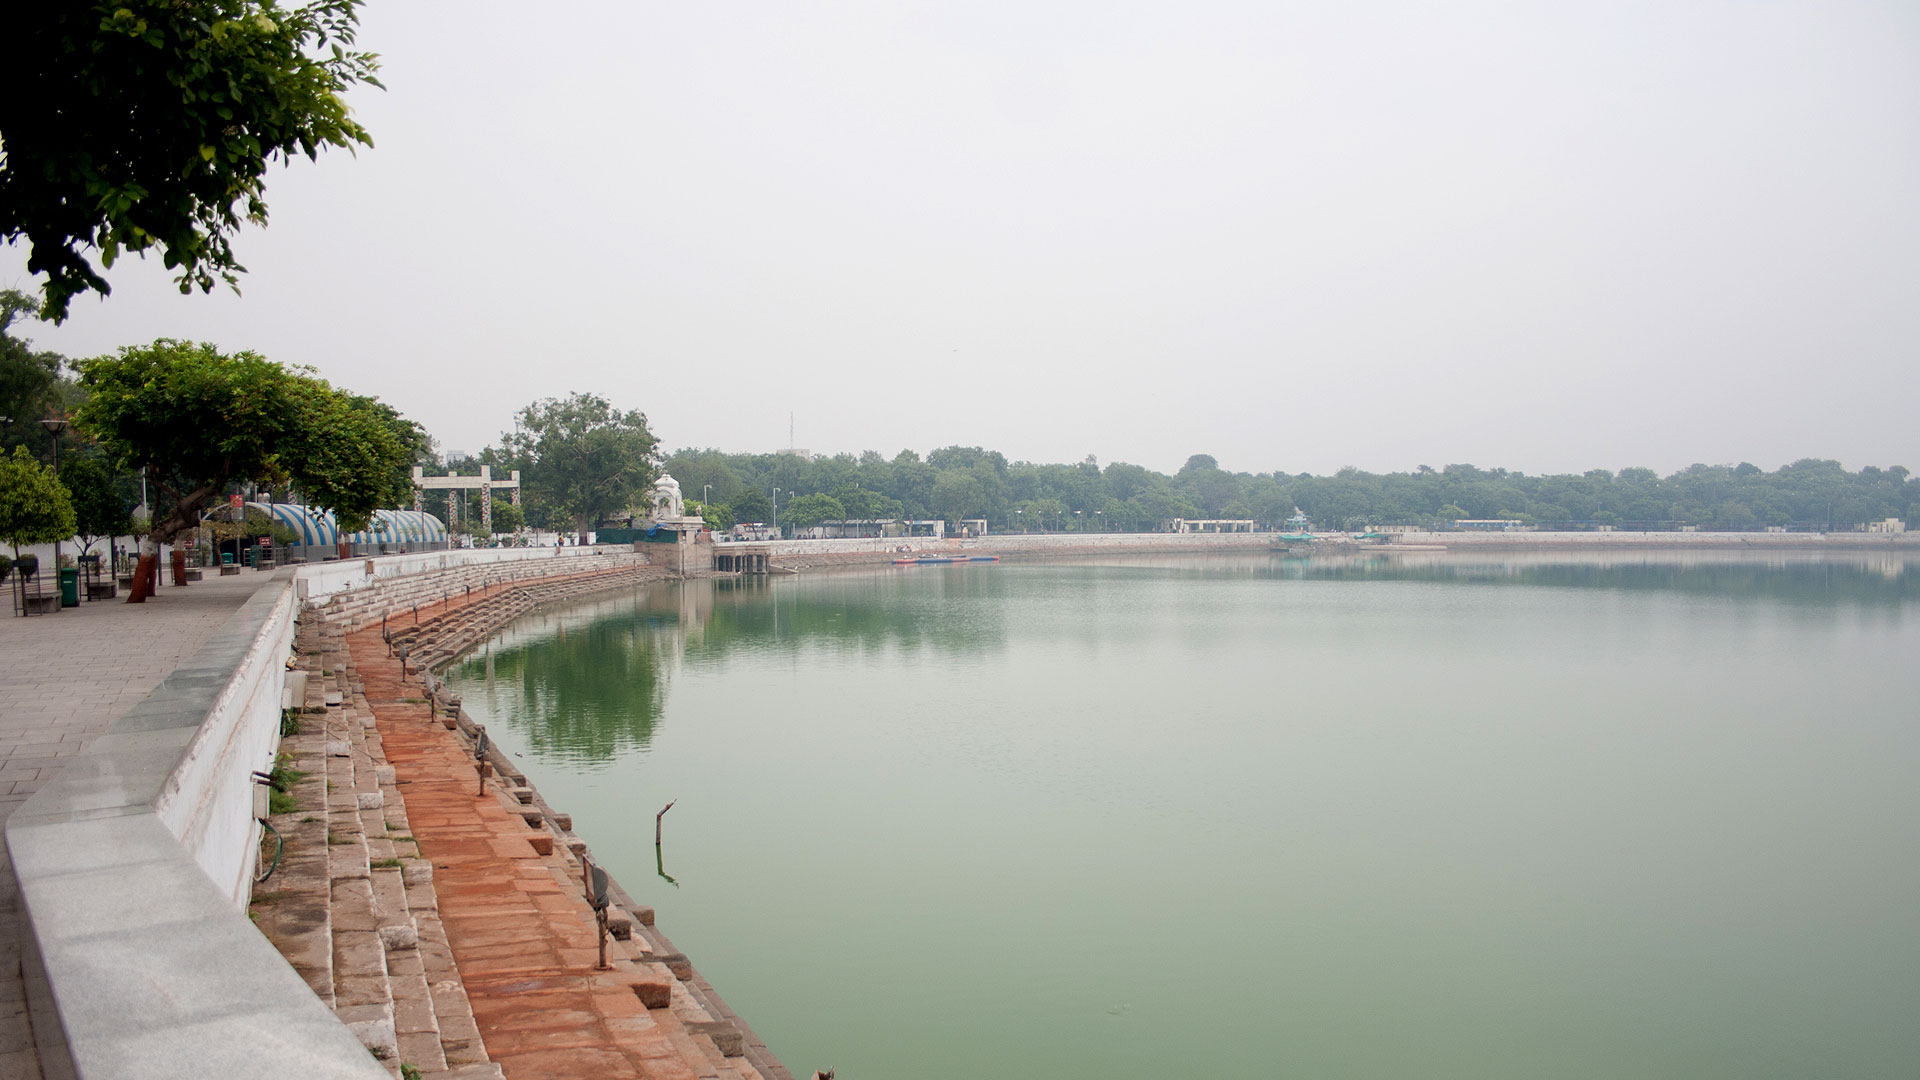 A view of the Kankaria lake and the lakefront promenade in Ahmedabad (India)